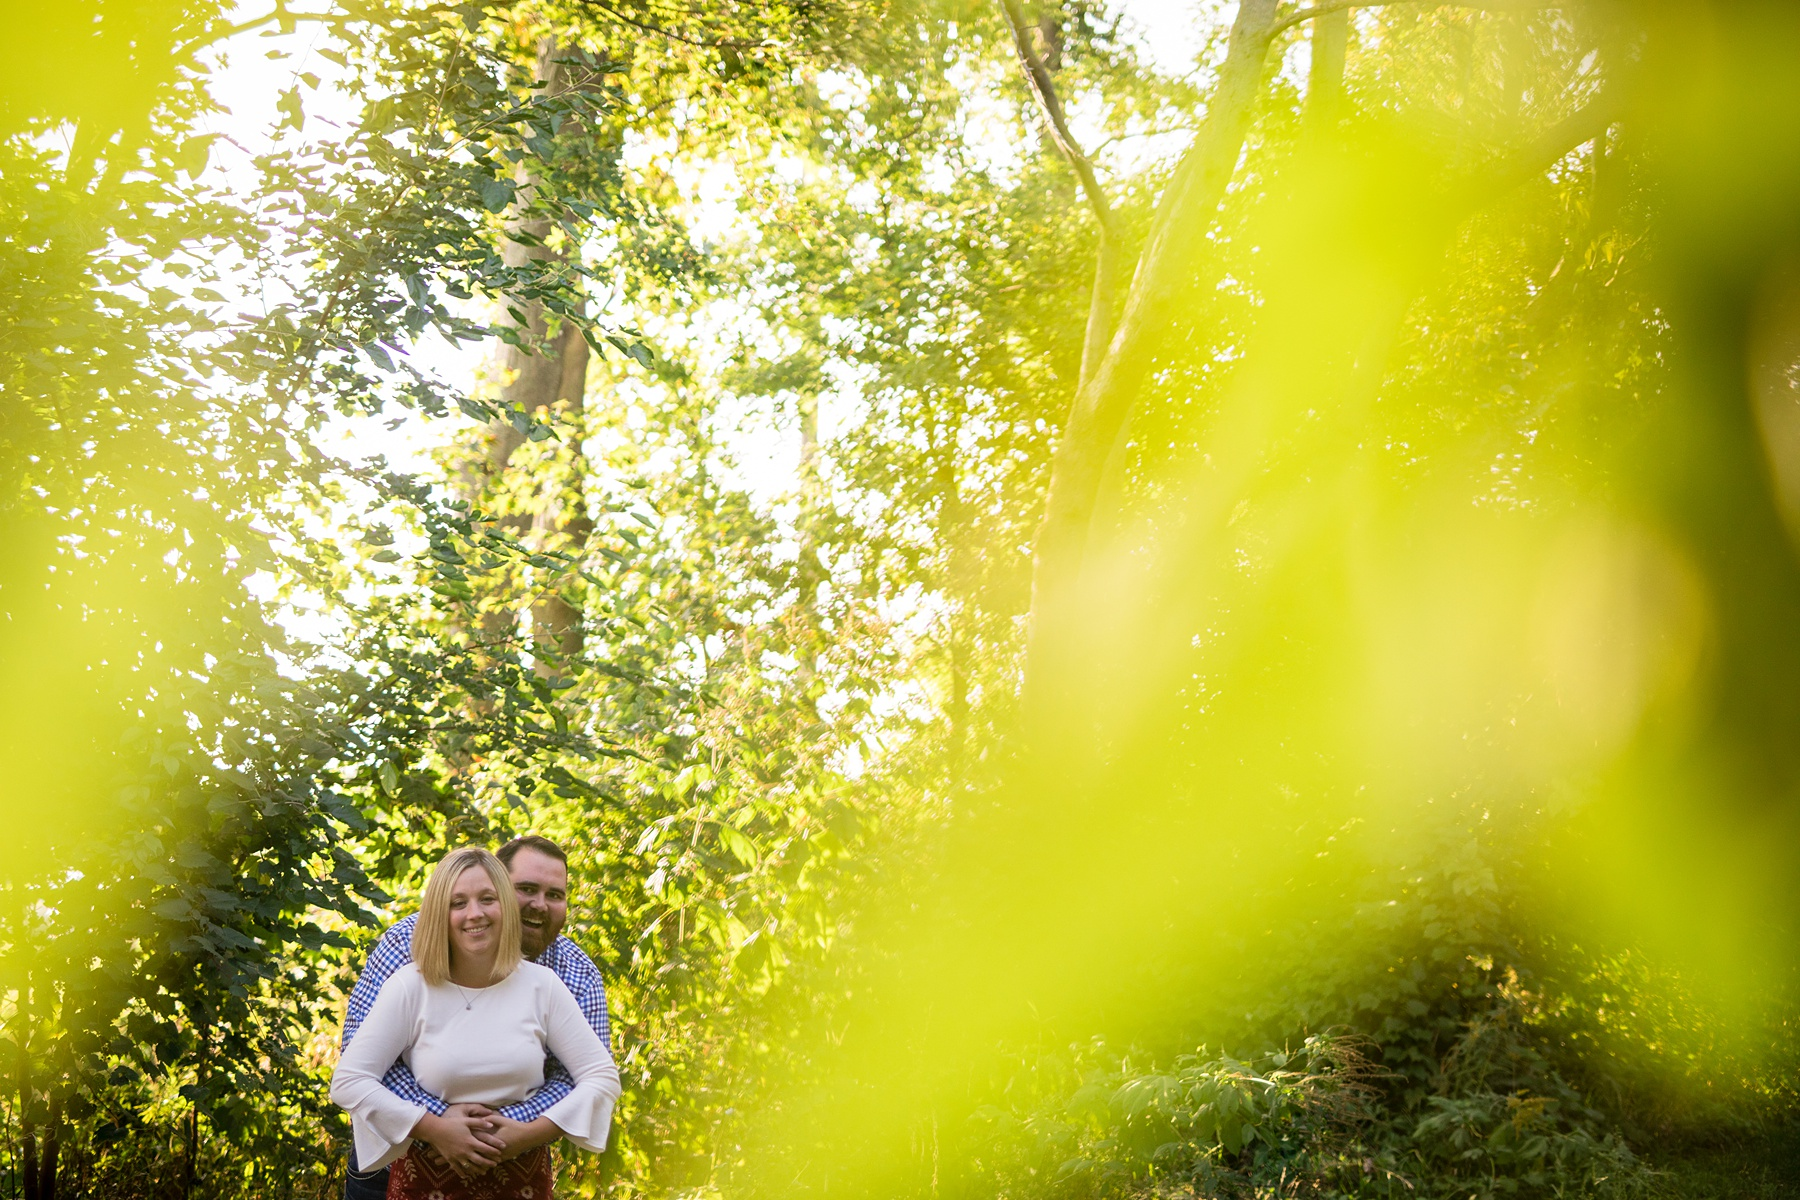 Brandon_Shafer_Photography_Megan_Nate_West_Michigan_Engagement_Photos_0002.jpg